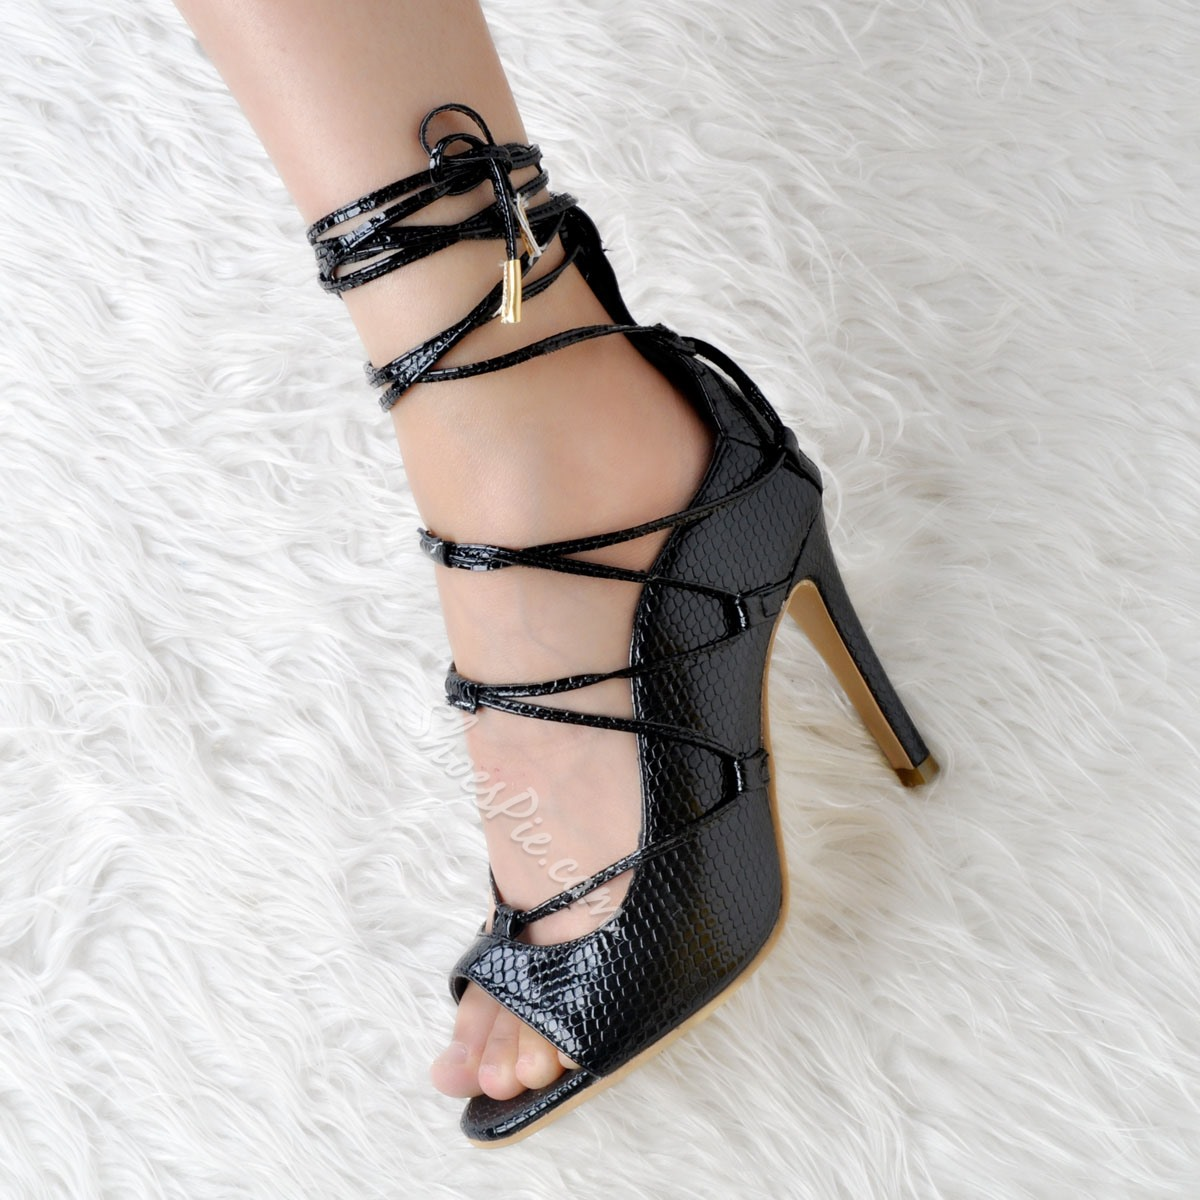 Shoespie Lace-Up Summer Gladiator Sandals Stiletto Heels Peep-toe